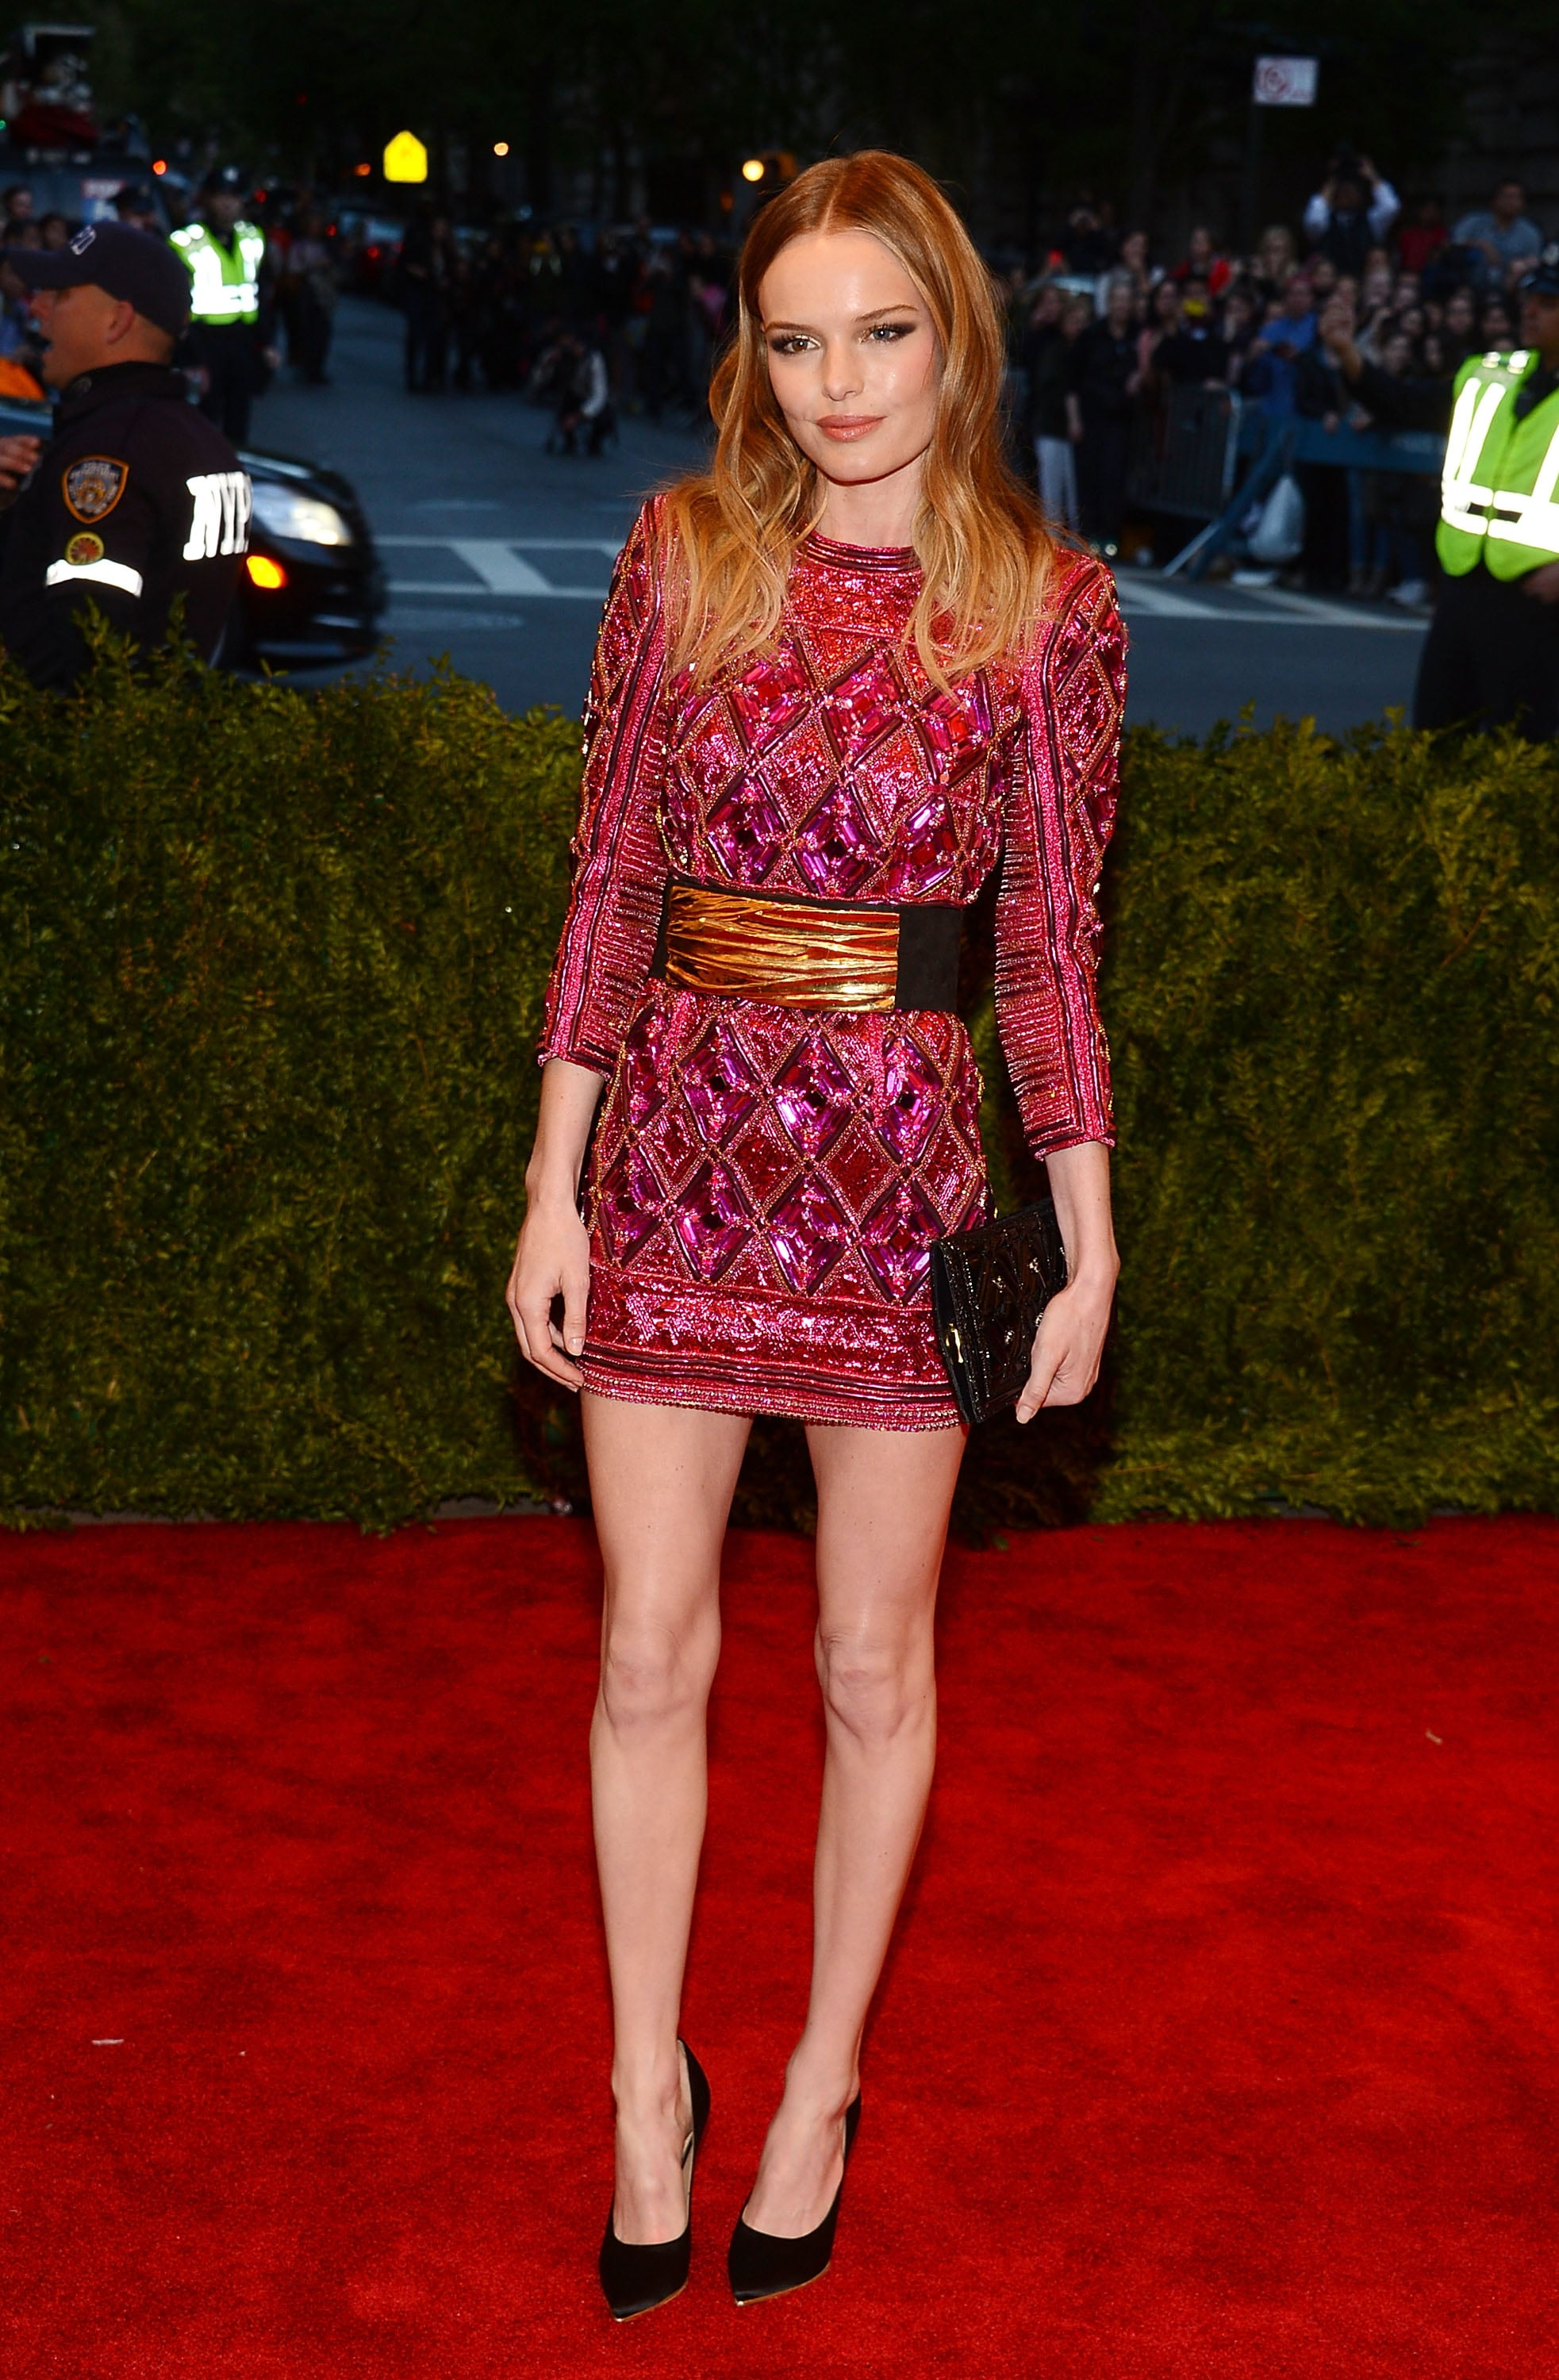 At the 2013 Met Gala, Kate Bosworth hit a punk,chic high